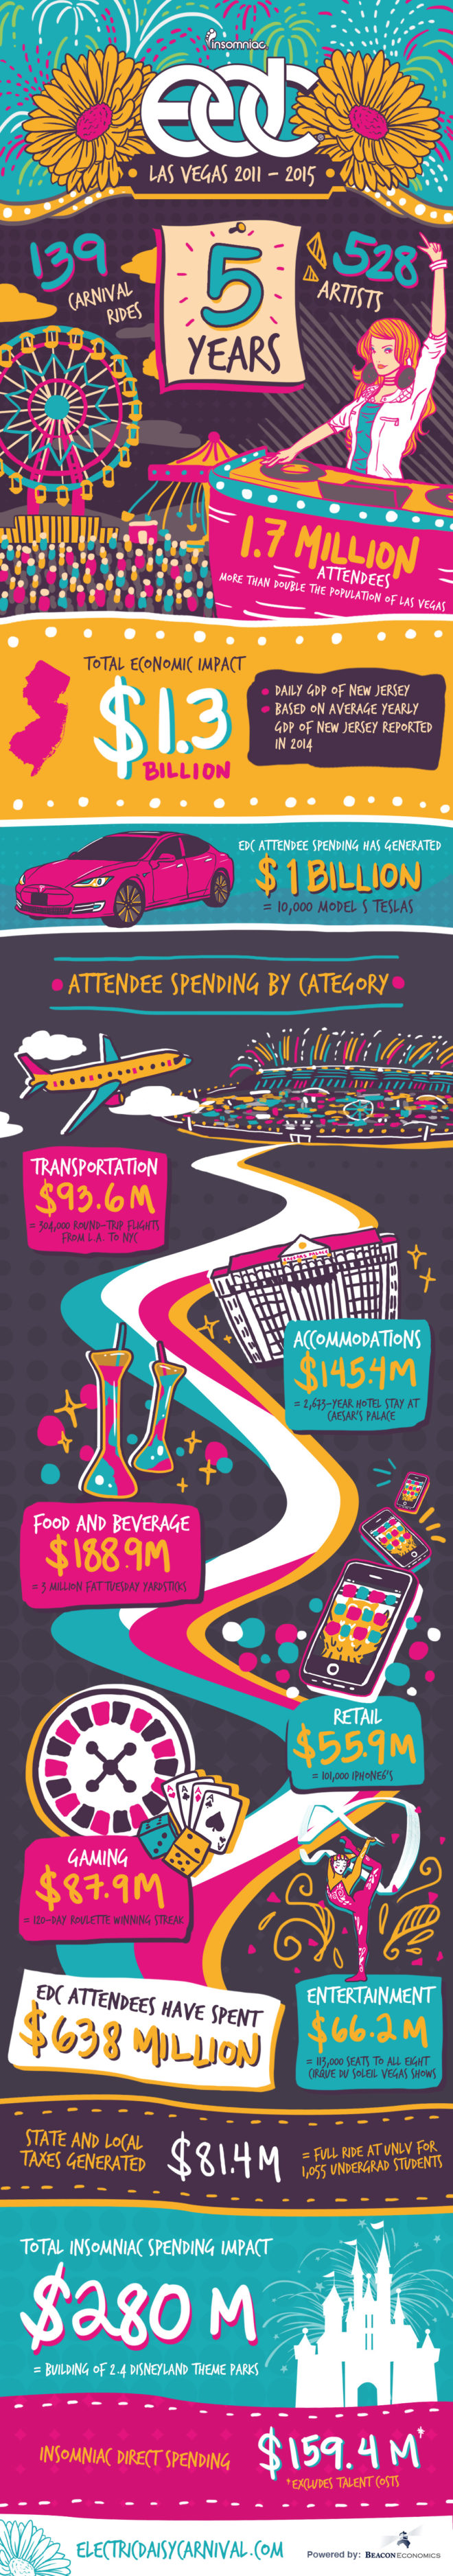 EDC-Las-Vegas-2015-Economic-Impact-Infographic